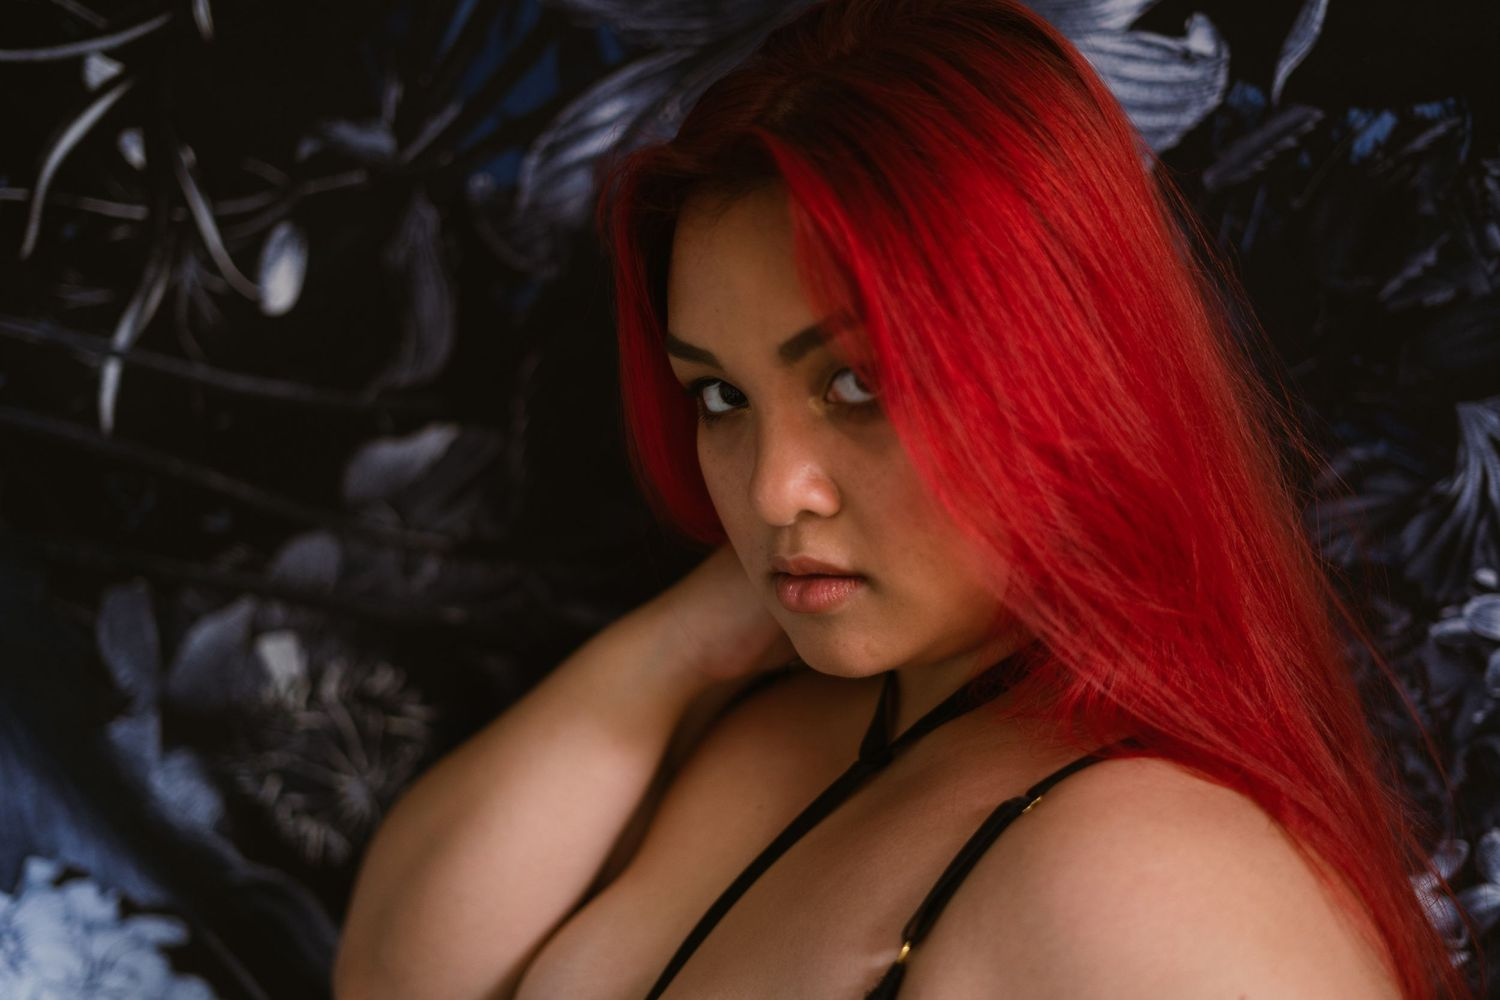 a woman with red hair and medium skin looks intensely at the viewer